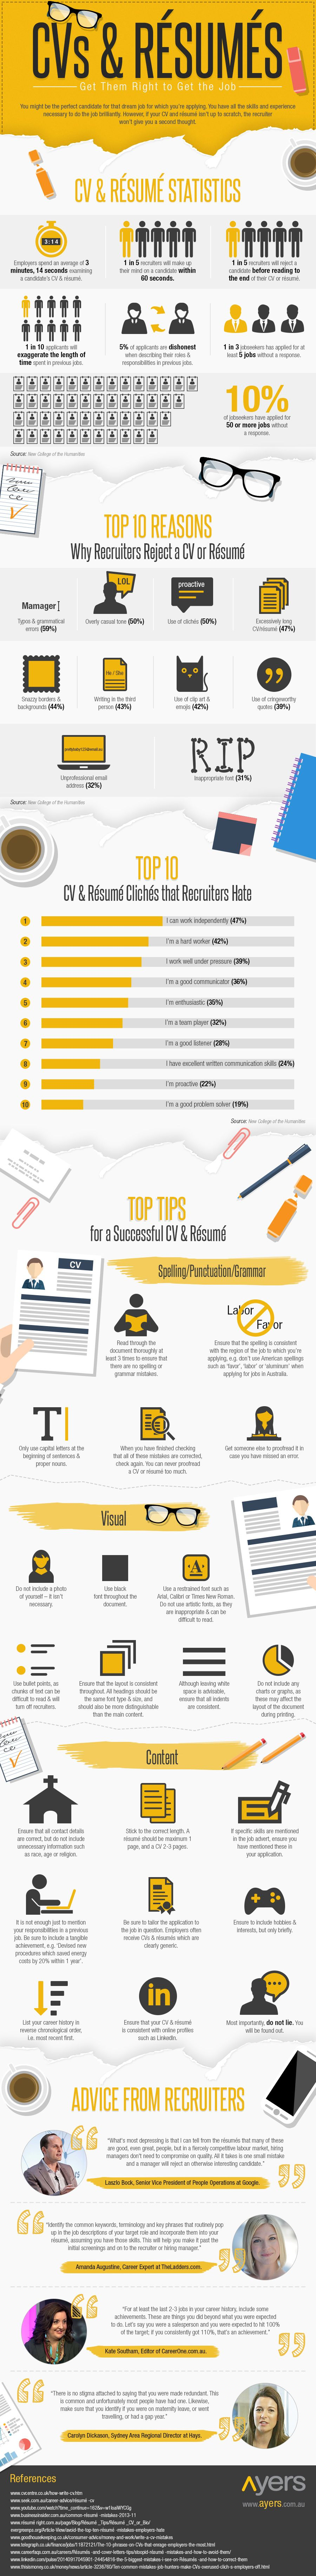 cvs  u0026 resumes  get them right to get the job infographic